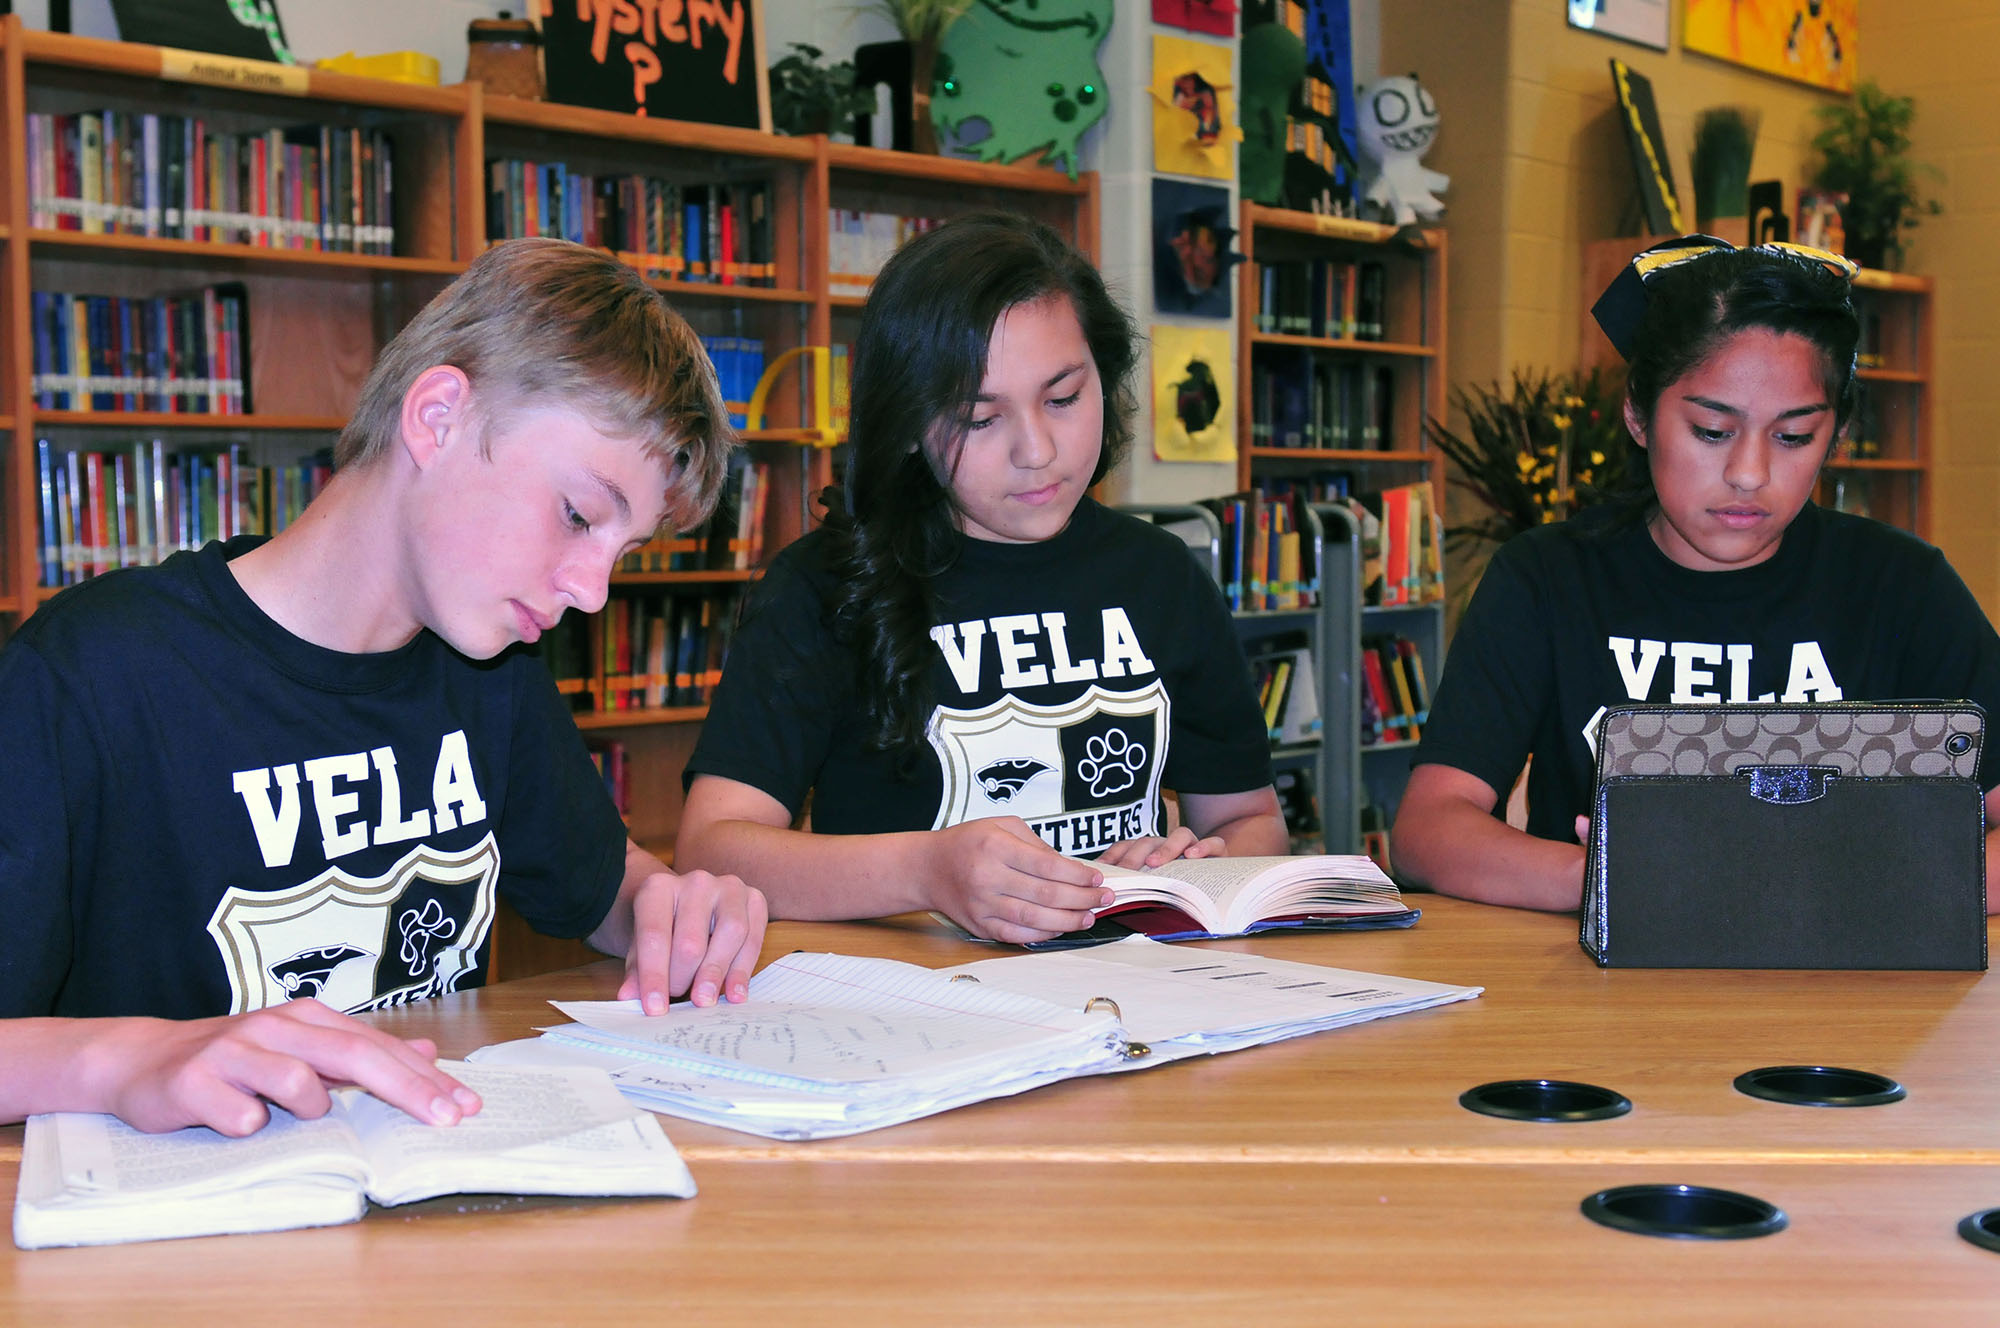 Vela University prepares students for high school success and beyond